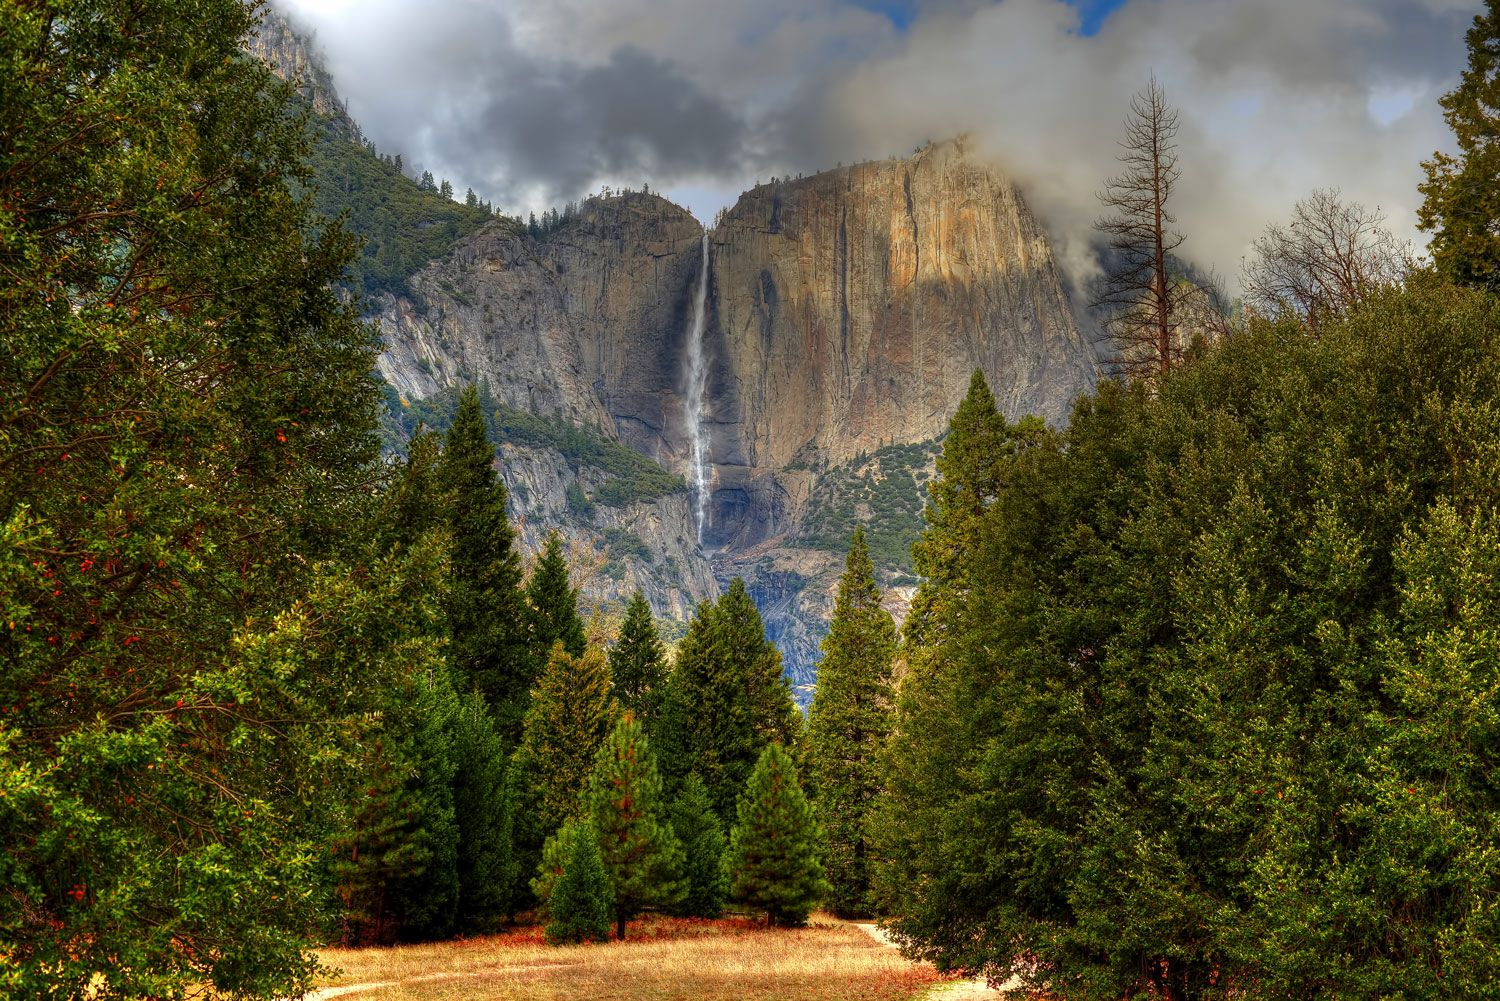 yosemite  kings canyon  sequoia  the sheer beauty of